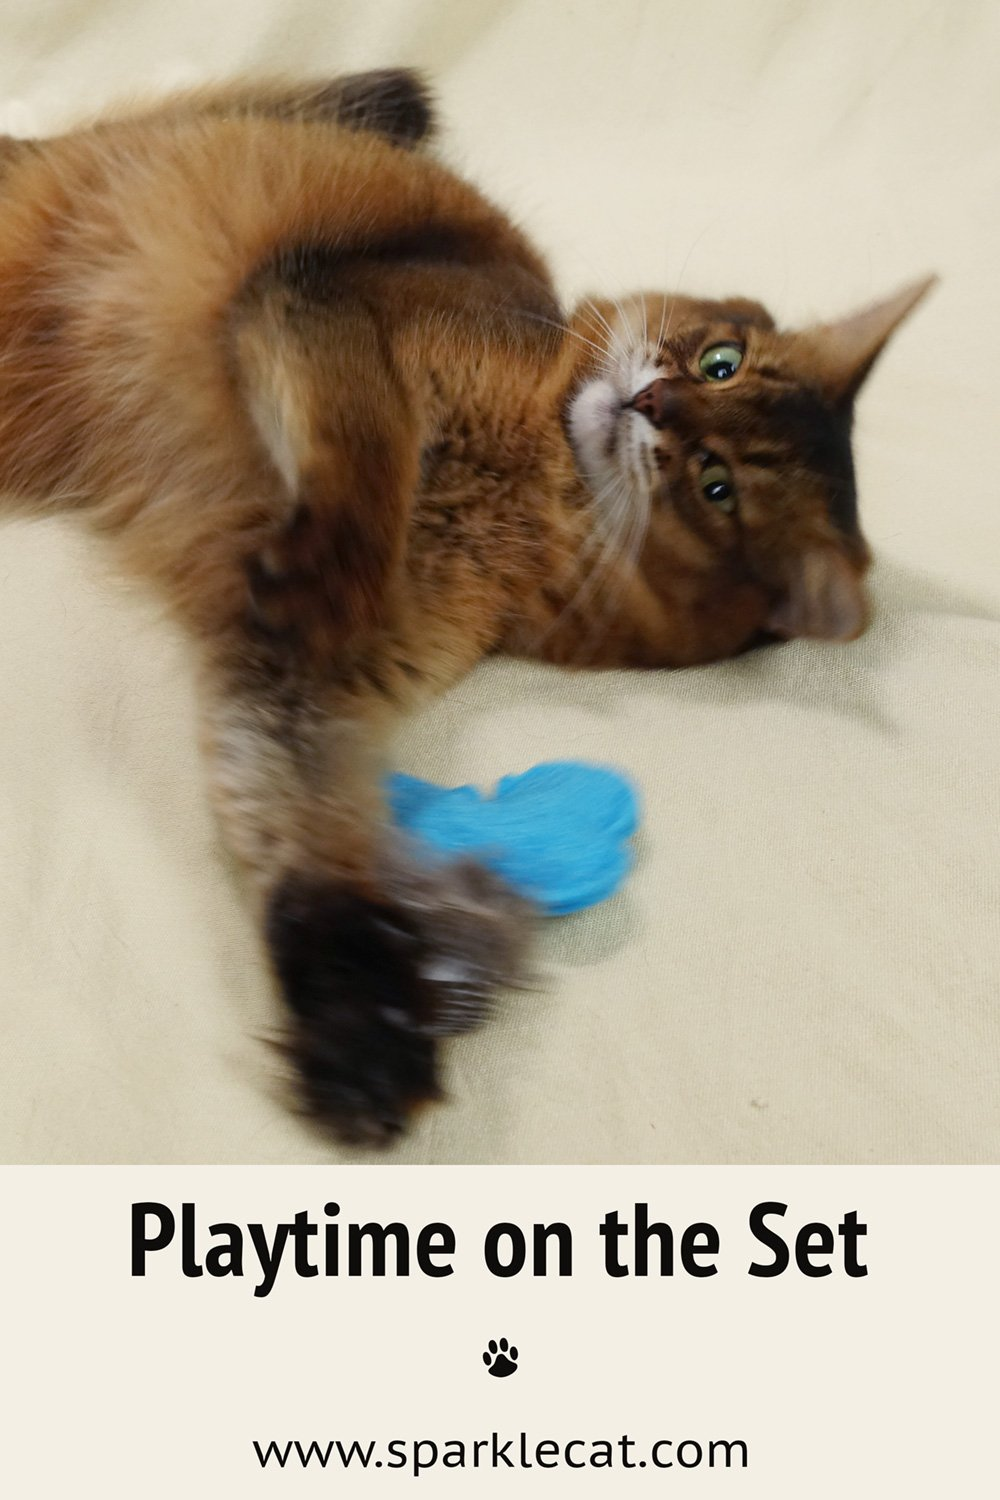 Cat Model Playtime on the Set